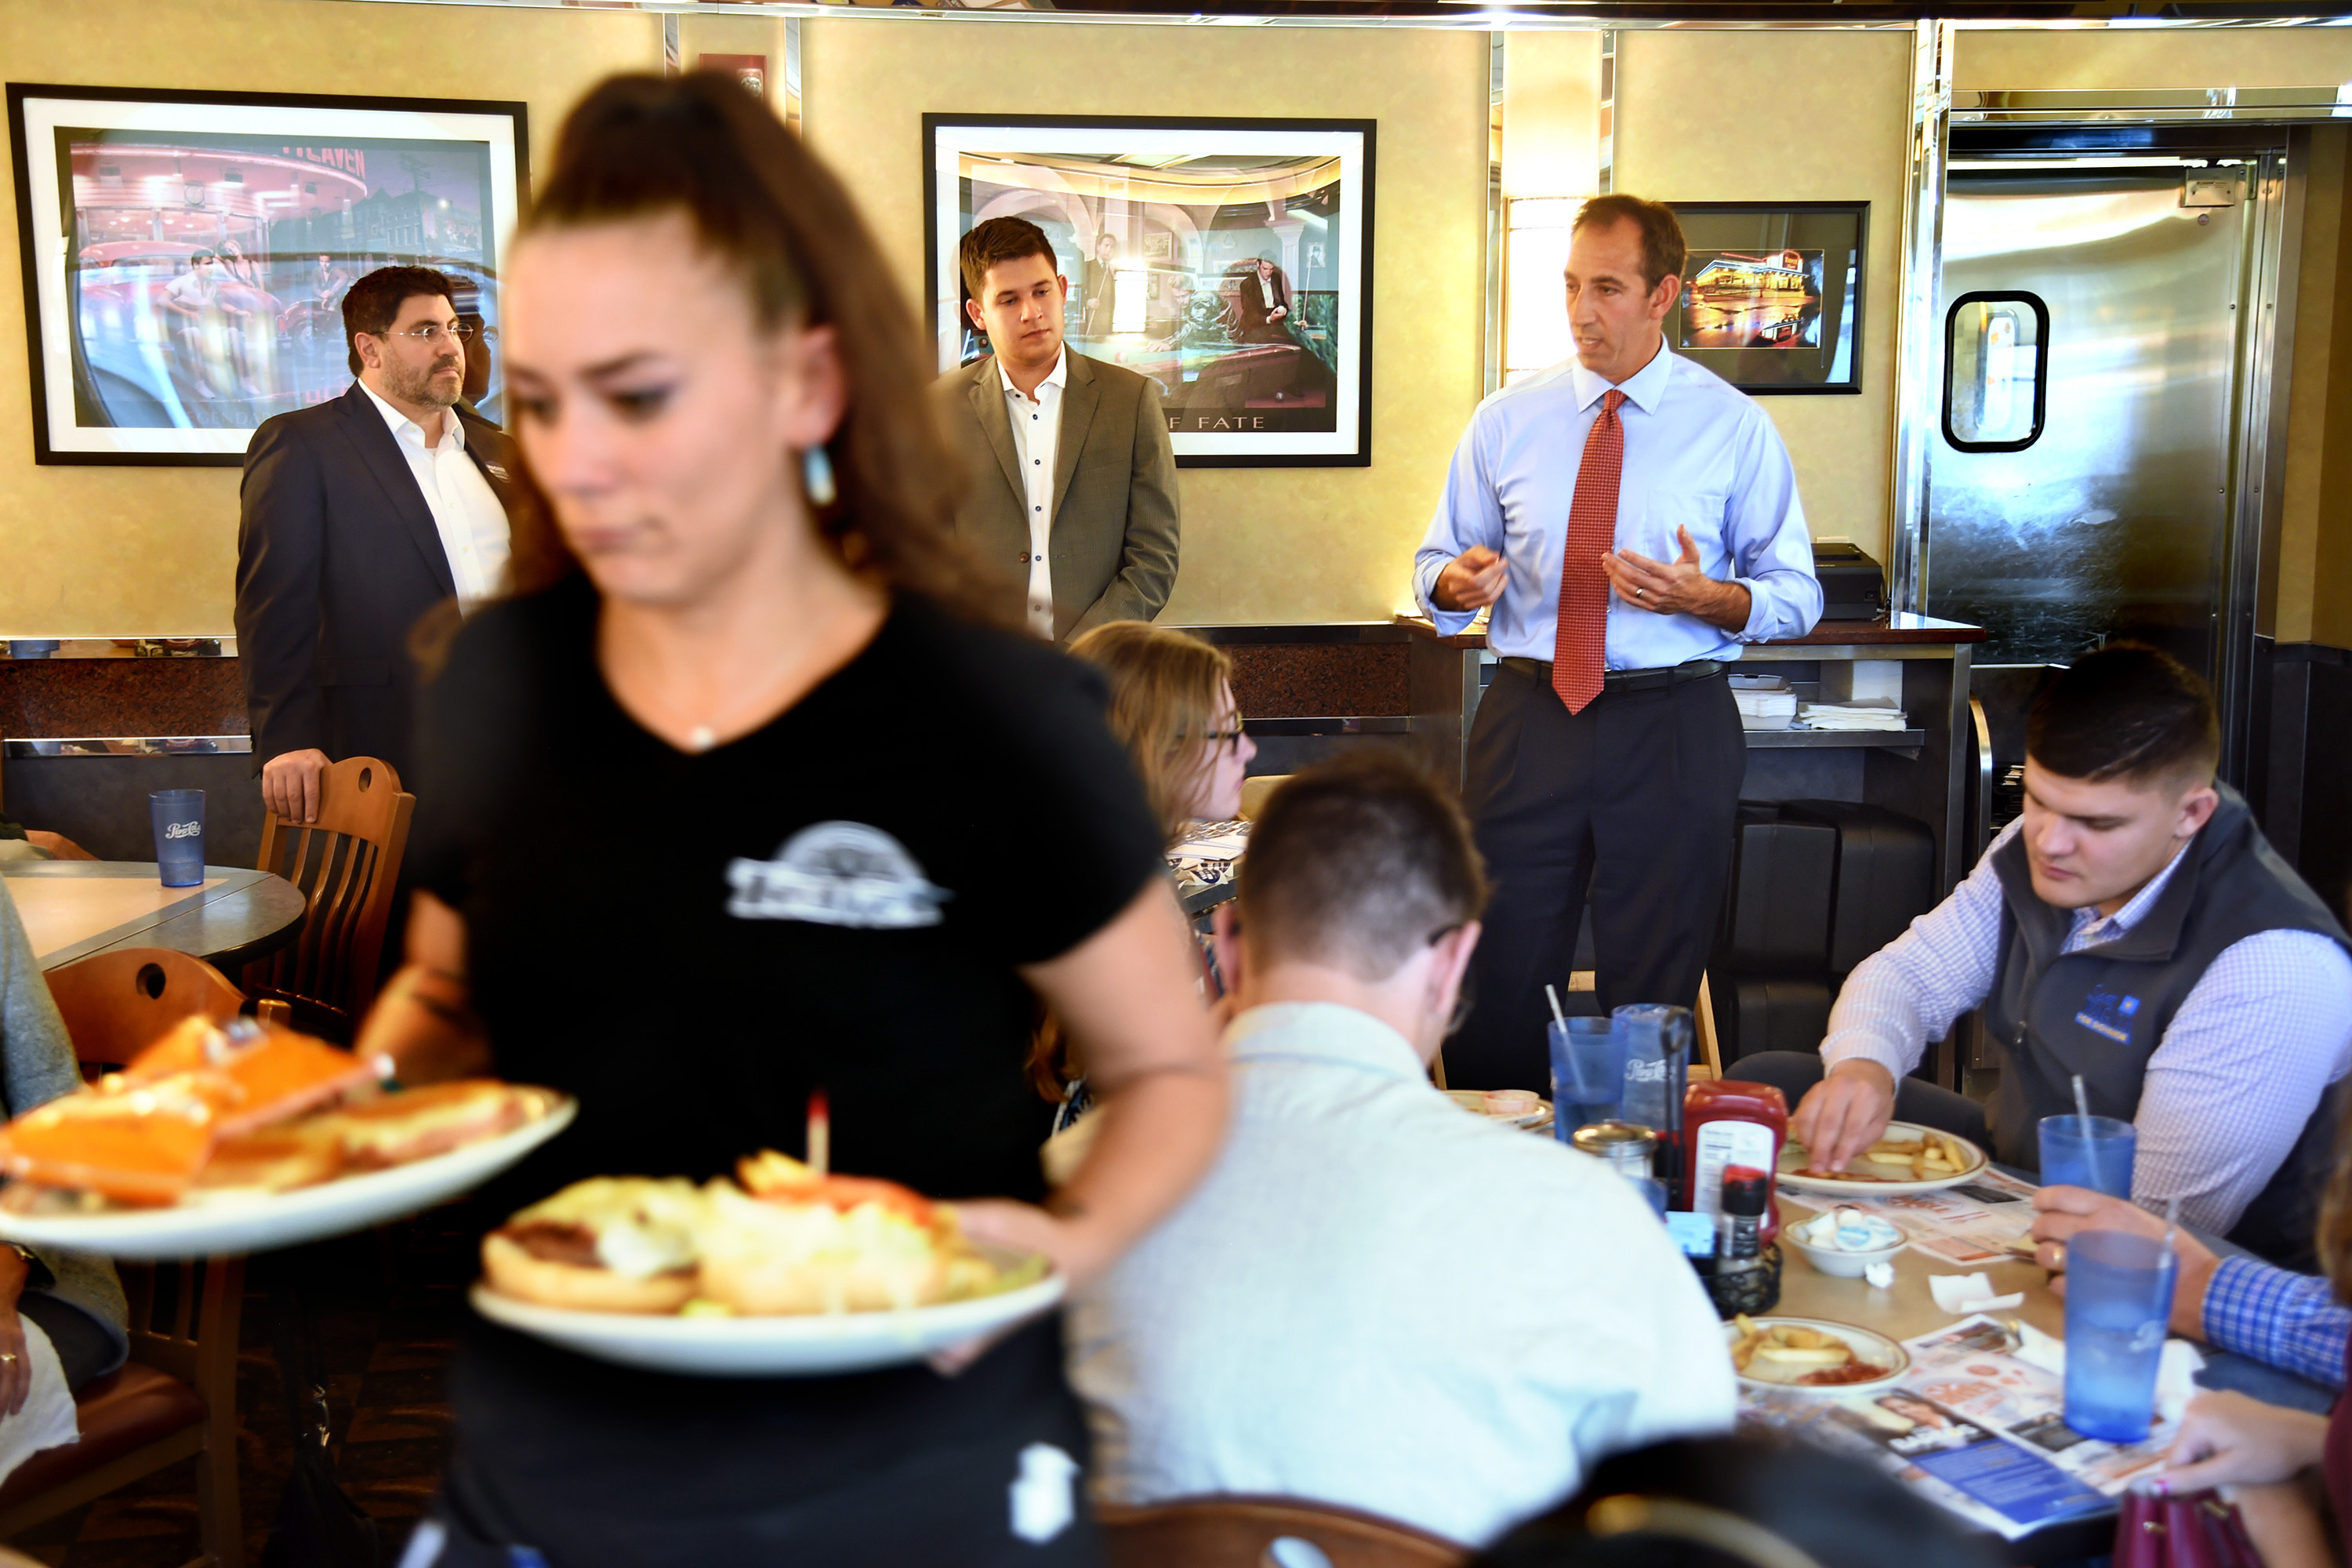 Bartos speaks to supporters at the Trivet Diner in Allentown.